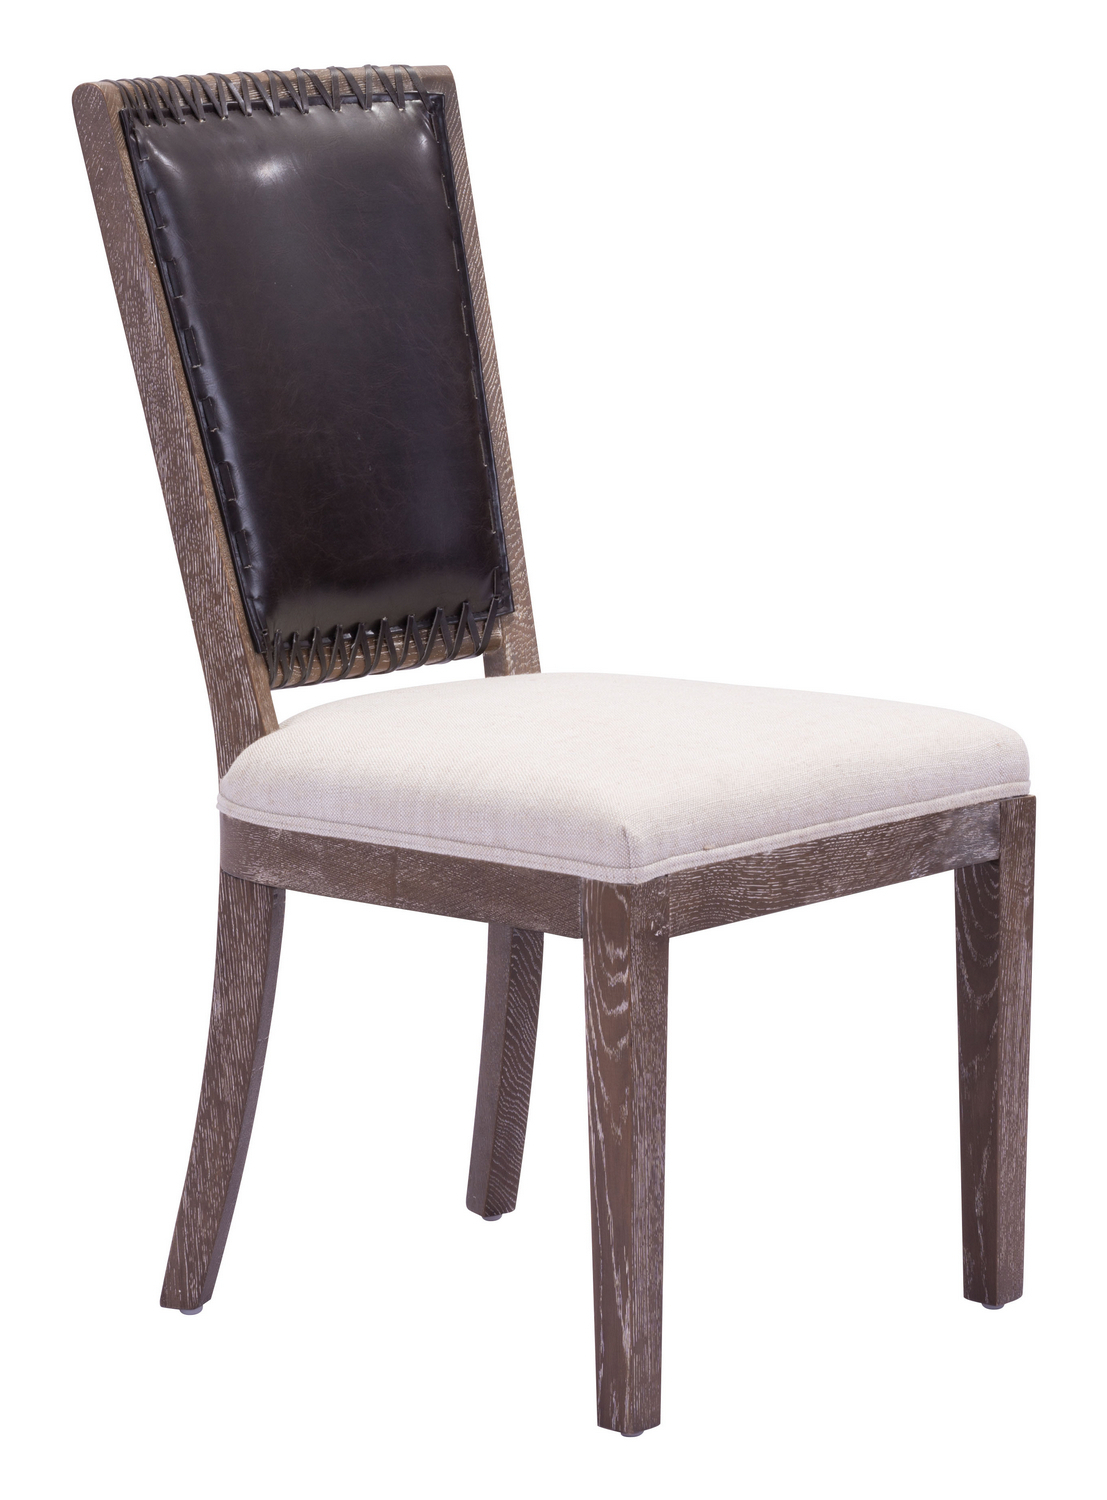 Dining Chair From The Market Collectionzuo Modern Canada With Regard To Artressia Barrel Chairs (View 10 of 15)